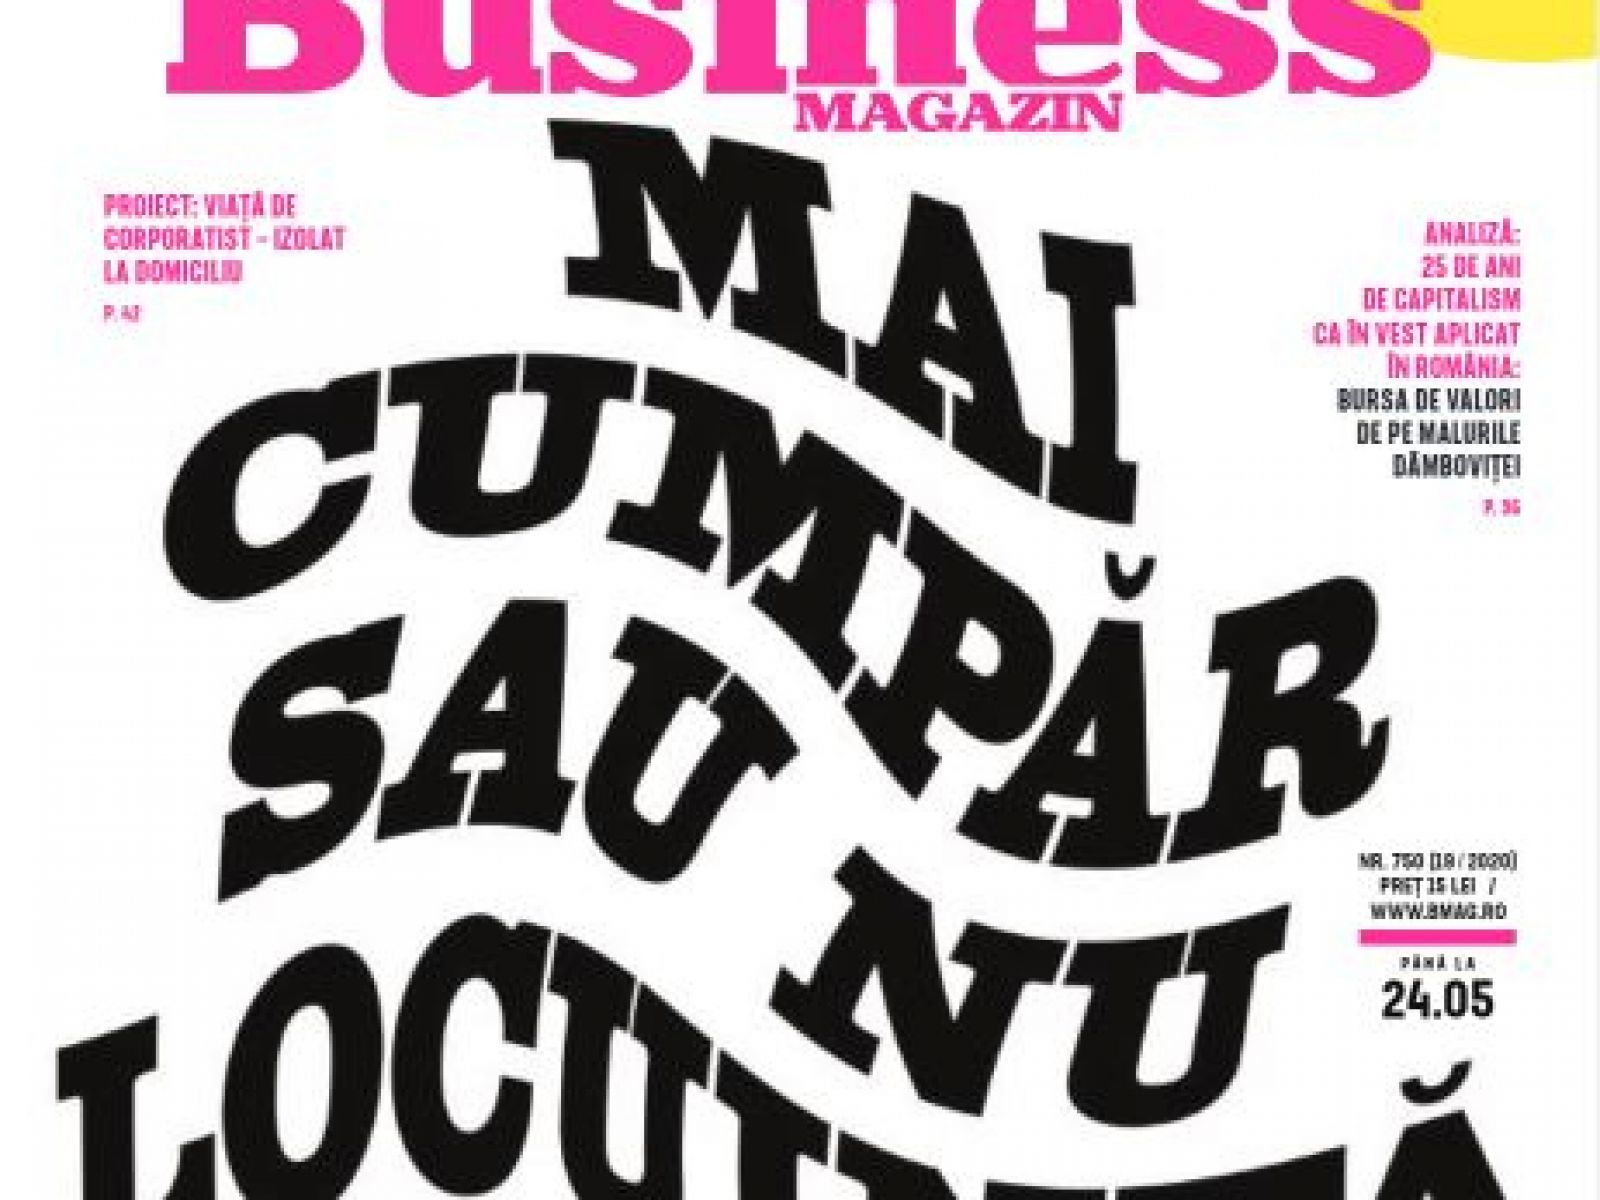 """Beatrice Dumitrașcu for Business Magazin: """"The location will make the difference when we speak about real estate"""""""